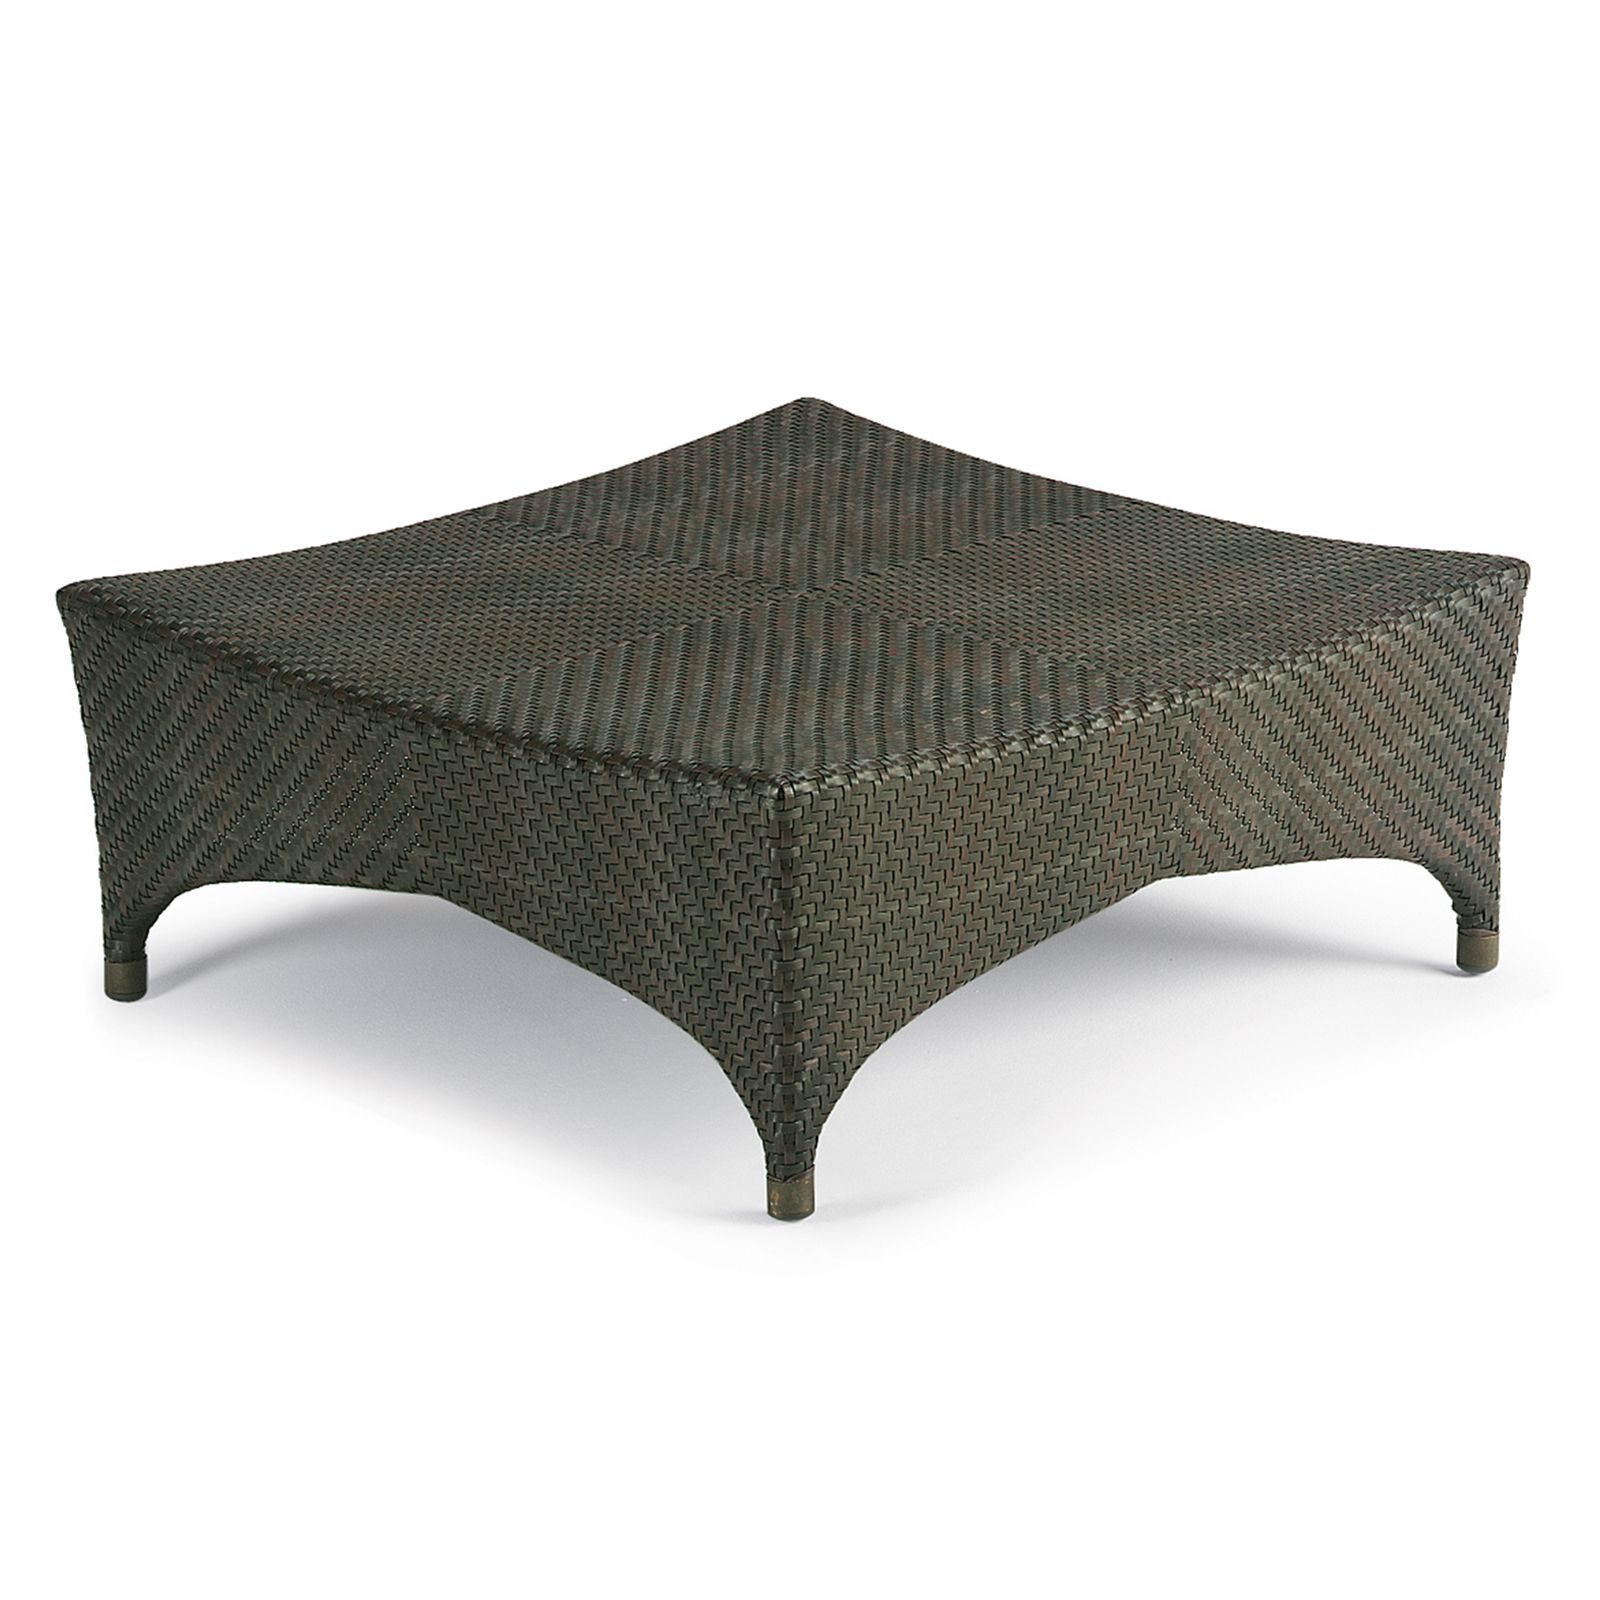 Marrakesh Low Side Table Brazil levin outdoor Pinterest